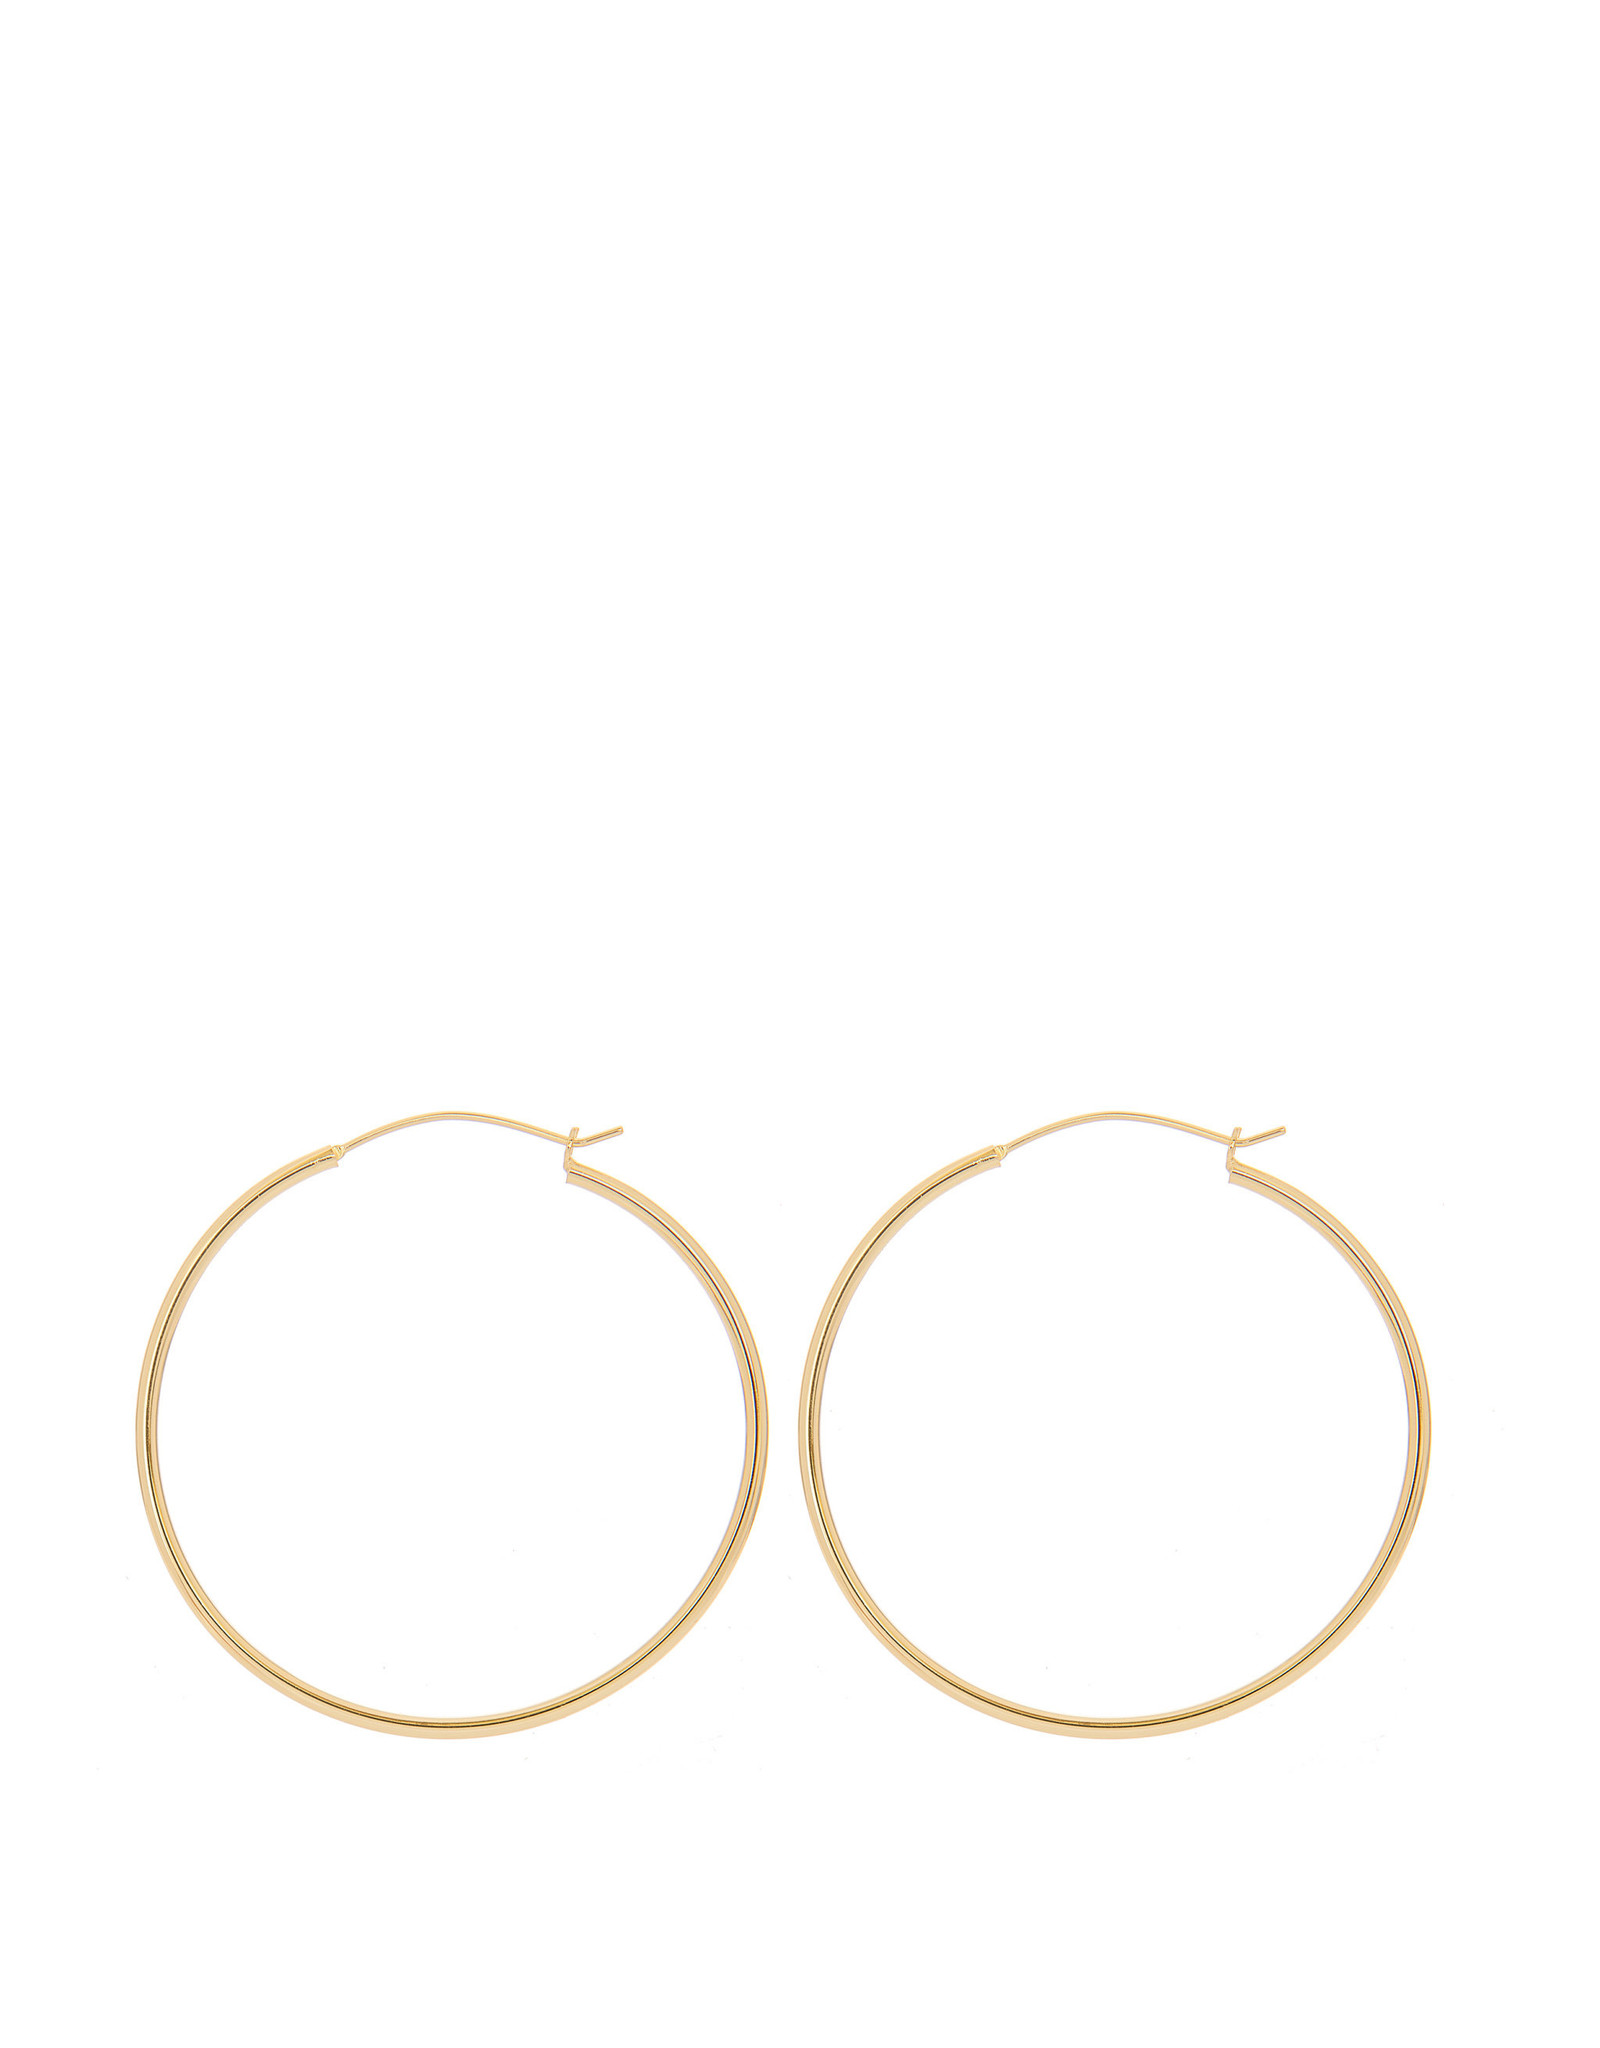 EARRING JADA HOOPSET 50mm GOLD